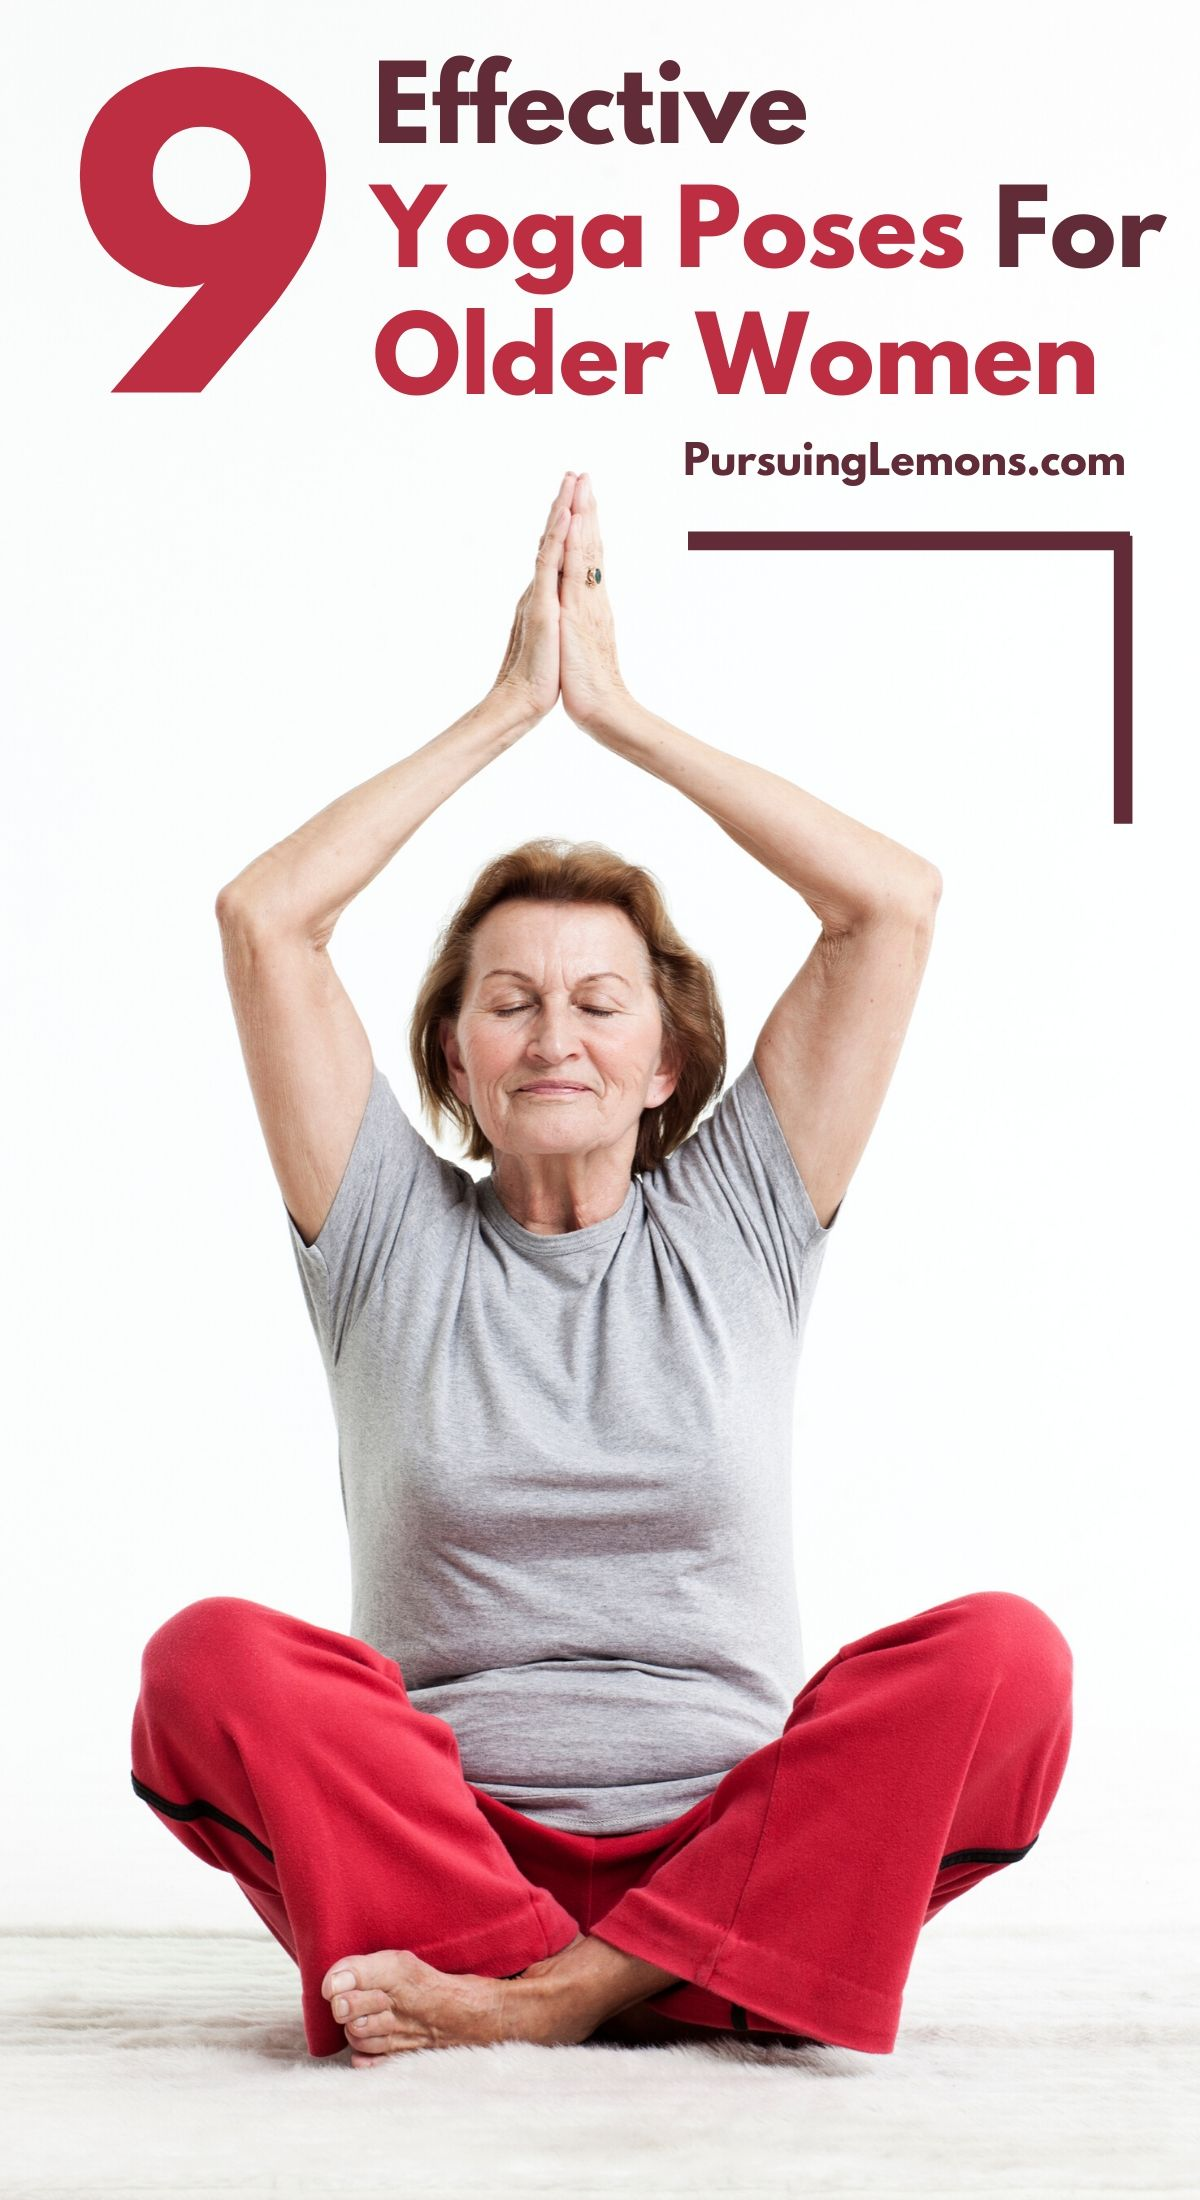 Yoga for Older Women: 9 Effective Asanas | If you're over 50, yoga for seniors is a great practice to reap the rewarding yoga benefits for your body and mind. Here are the yoga poses for seniors for you can try today! #yogaforseniors #yoga #yogaposes